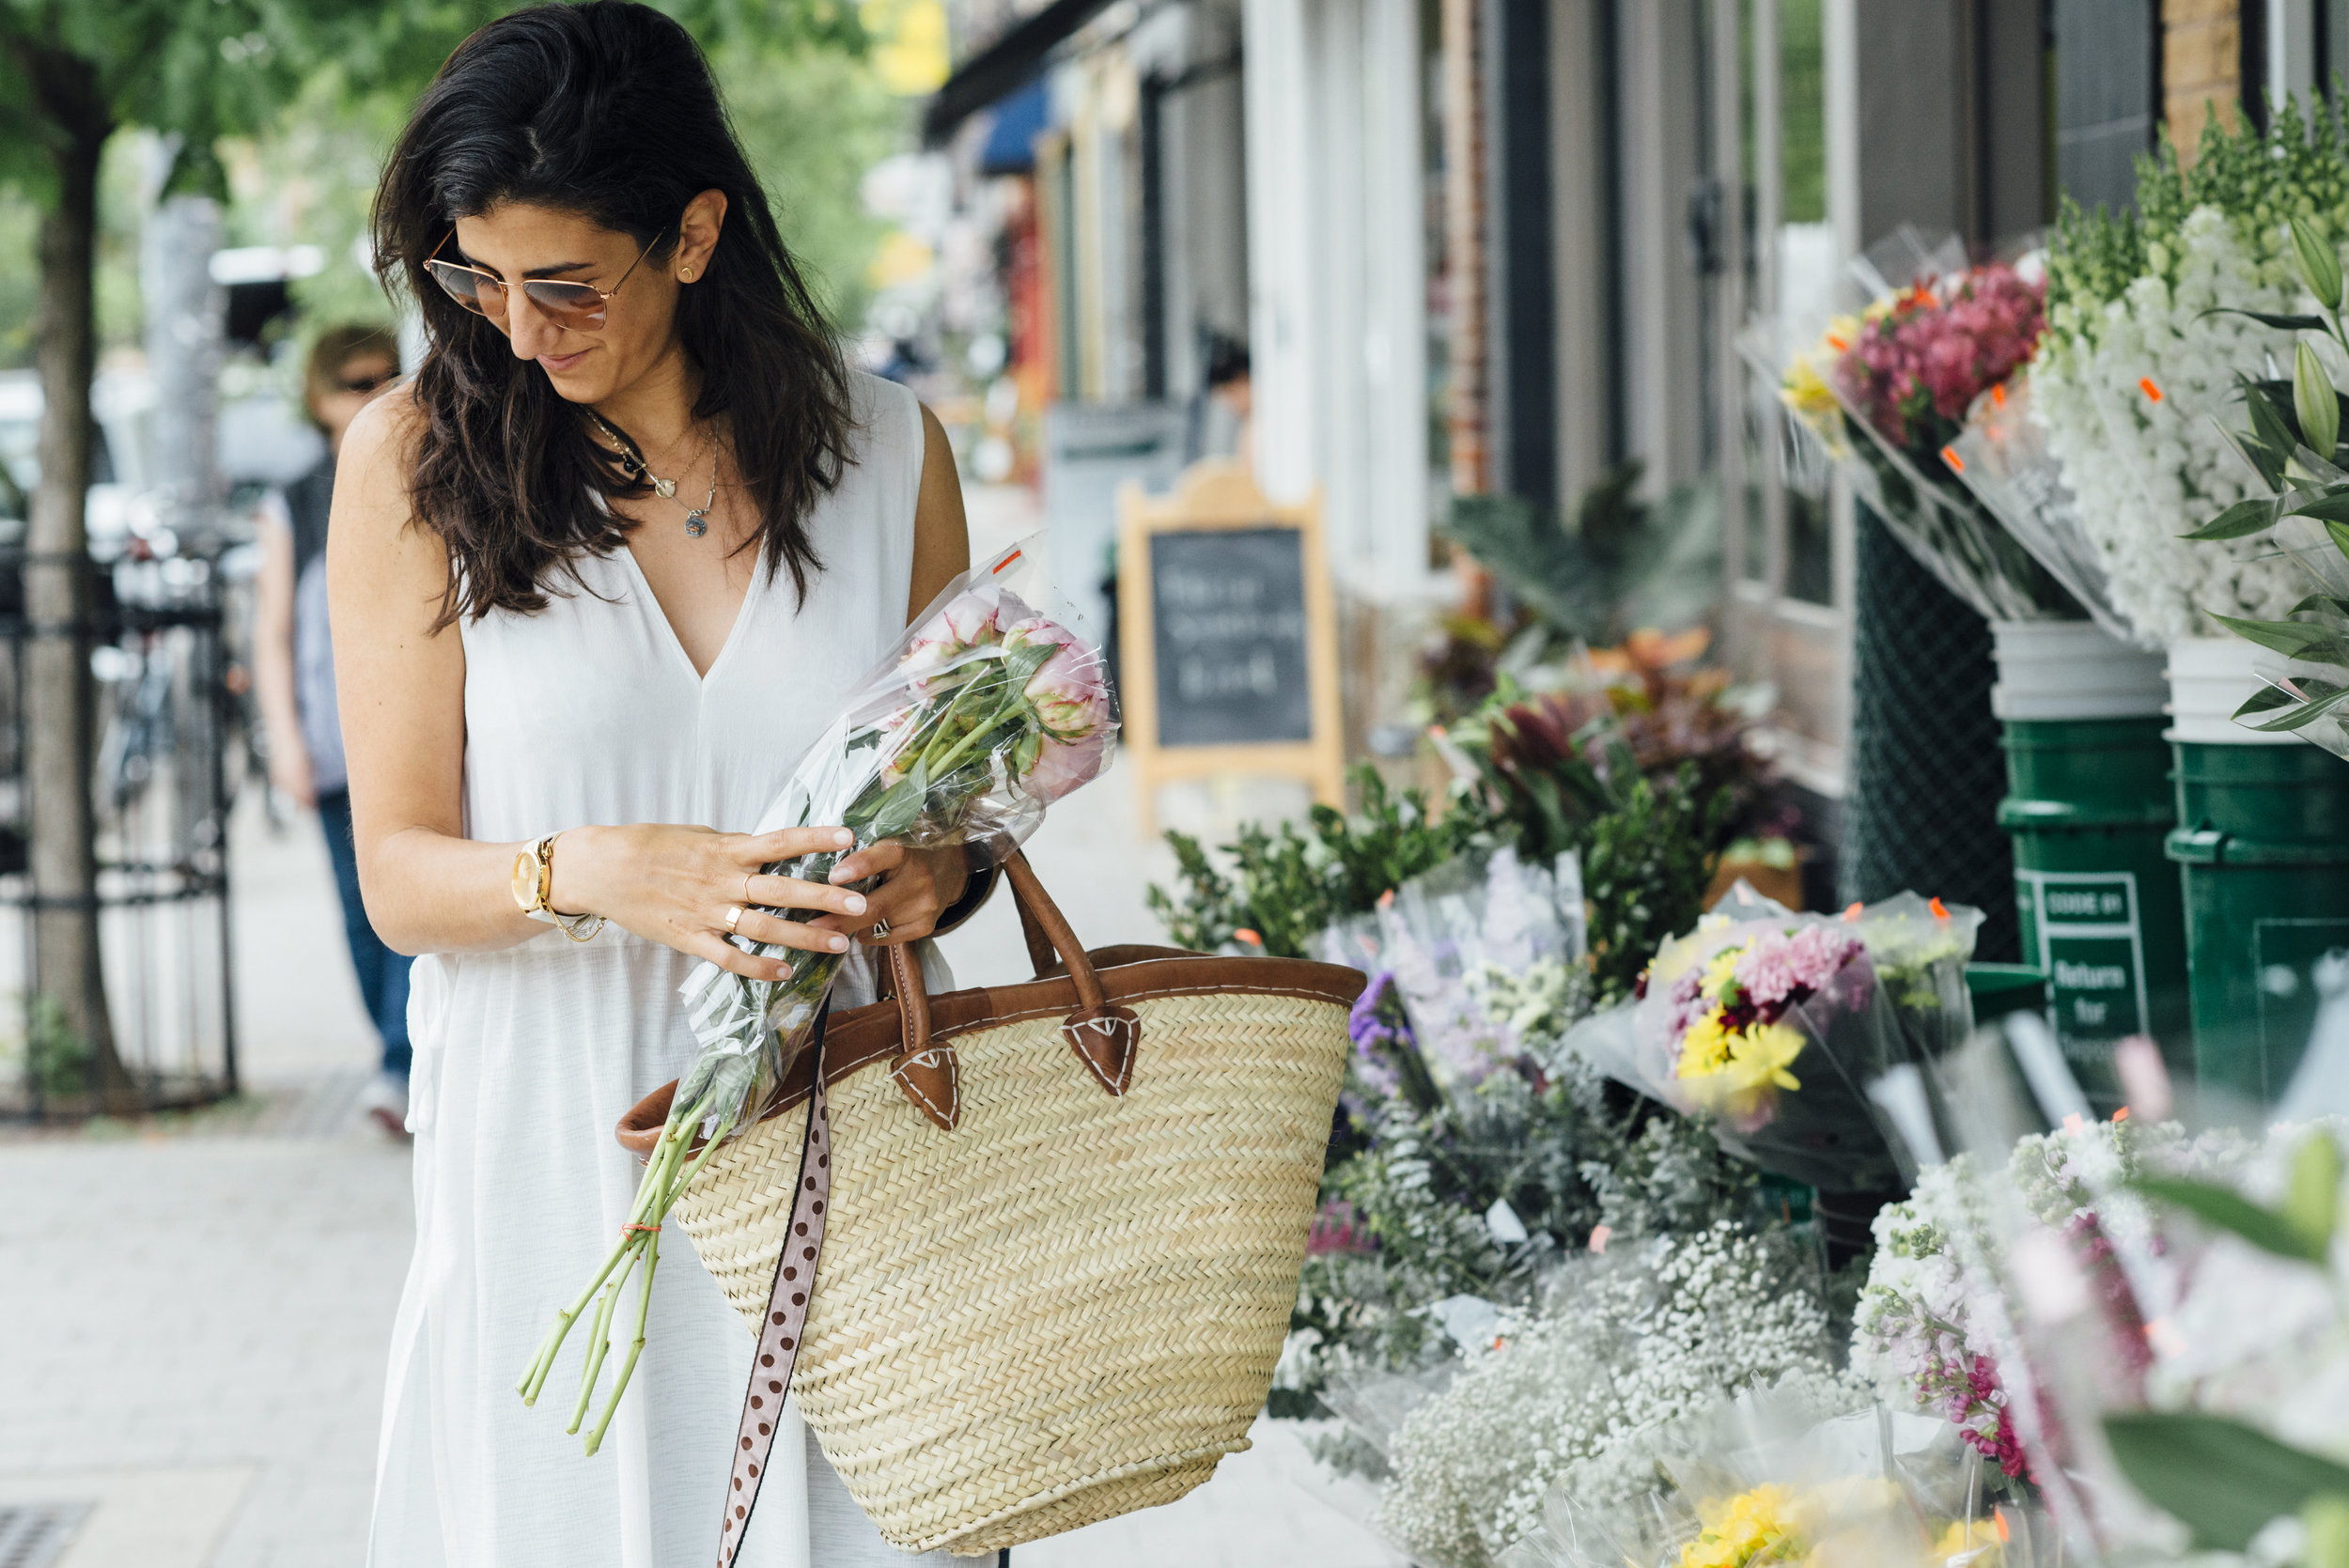 Look for natural fibres that breath in the summer heat and avoid tight clothes. Great advice from Alyssa Beltempo.